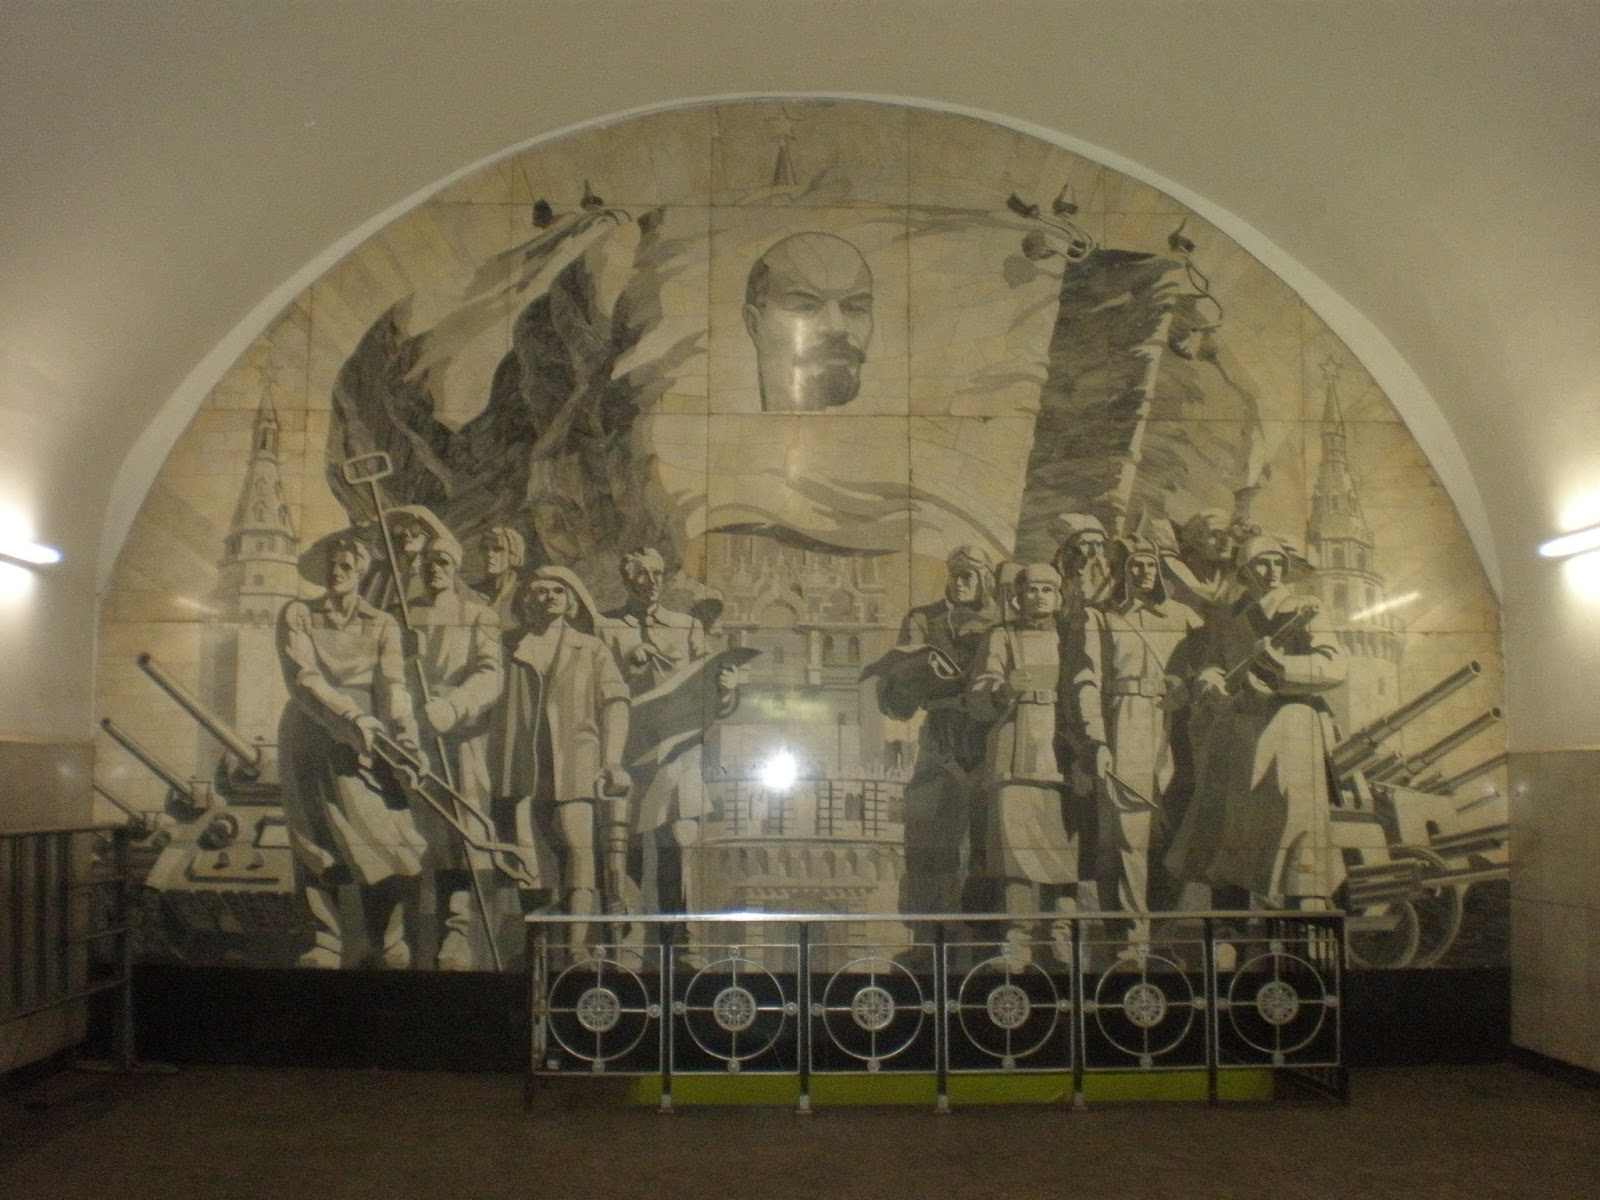 Moscow metro, lenin, ornate, eastern Europe, russia, communism,